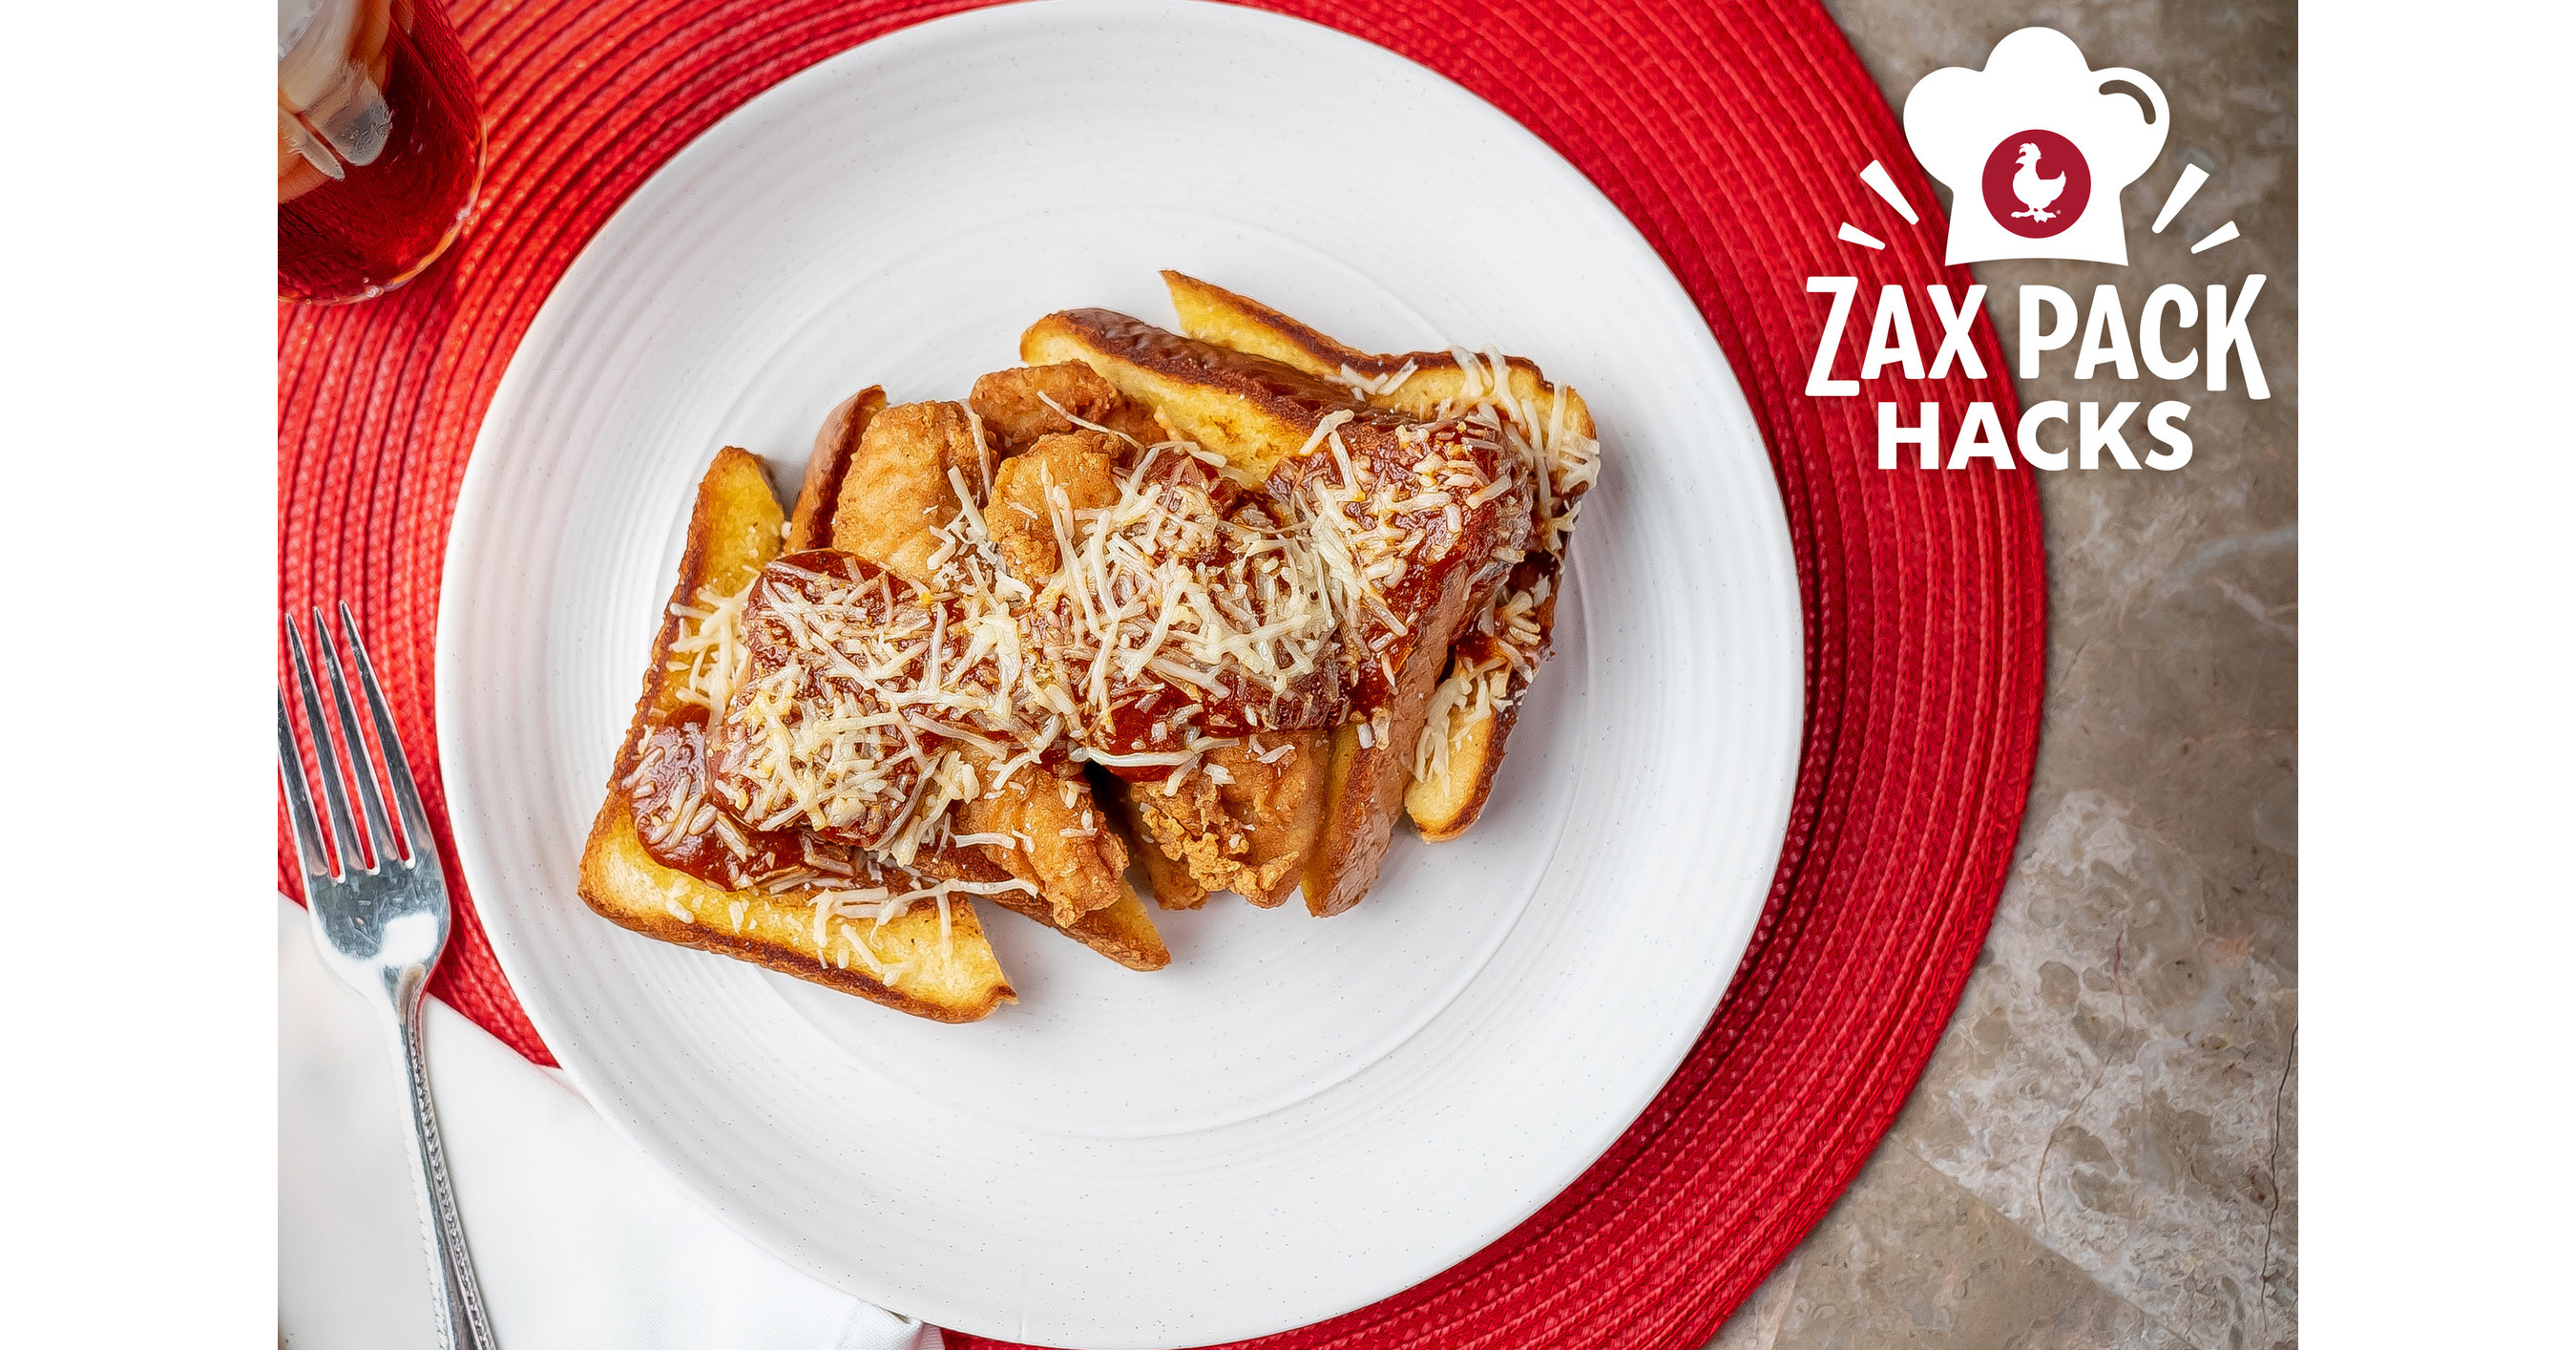 Zaxby S Cooks Up Spin Off Recipes With Zax Pack Hacks